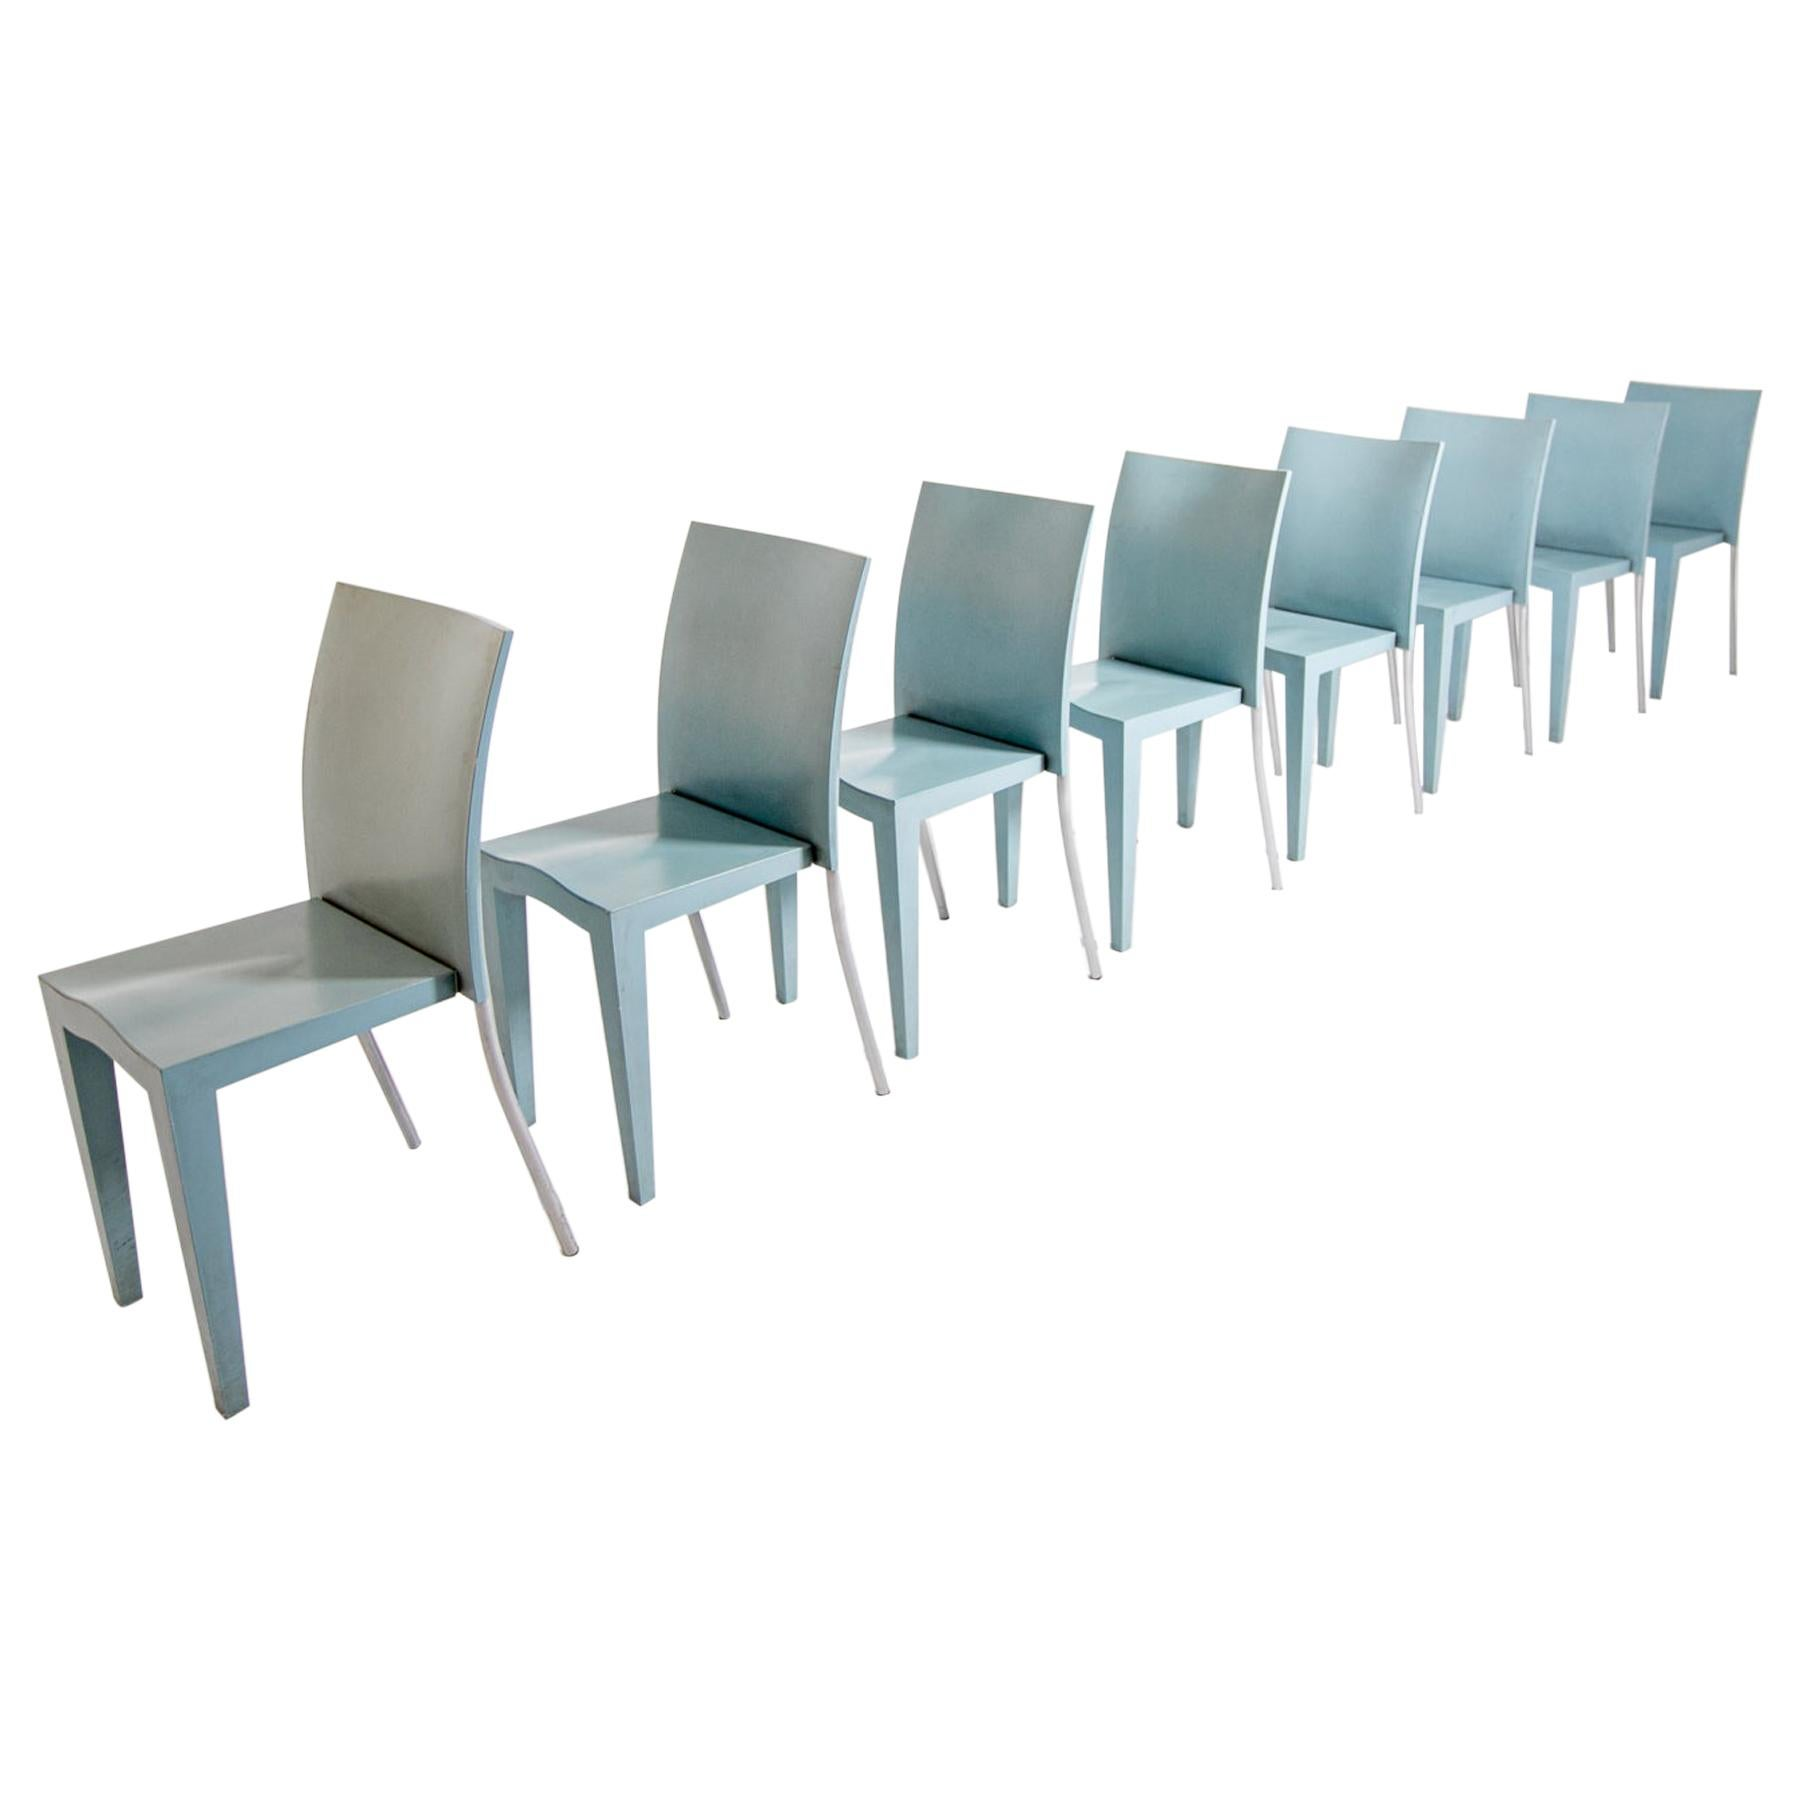 Philippe Starck by Kartell Set of Eight Light Blue Propylene Chairs, 1990s